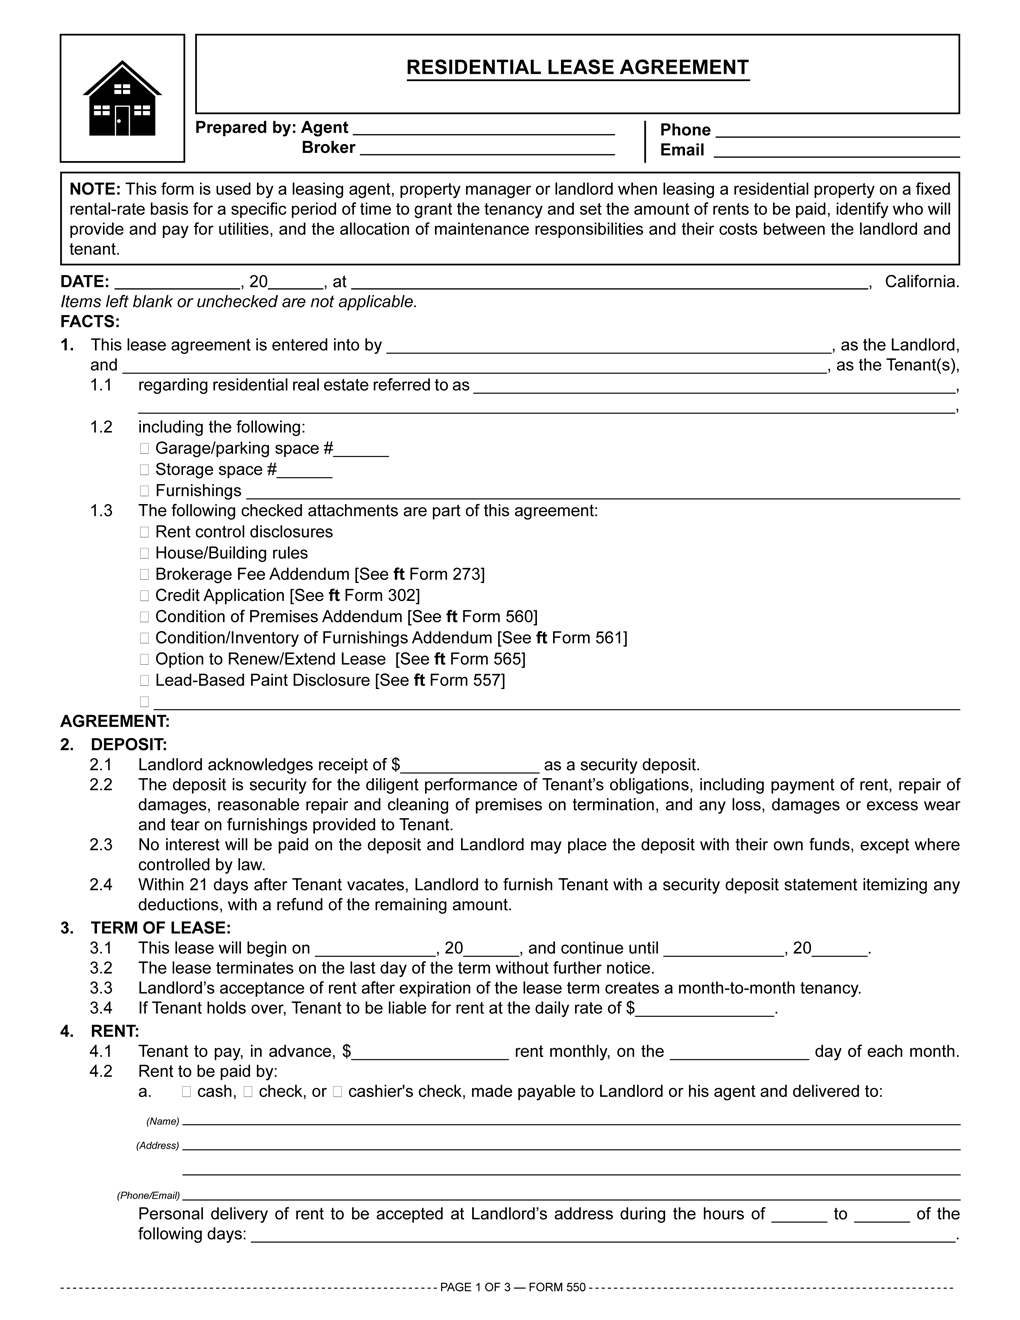 Apartment Rental Agreement Sample | Residential Lease Agreement Rpi Form 550 First Tuesday Journal